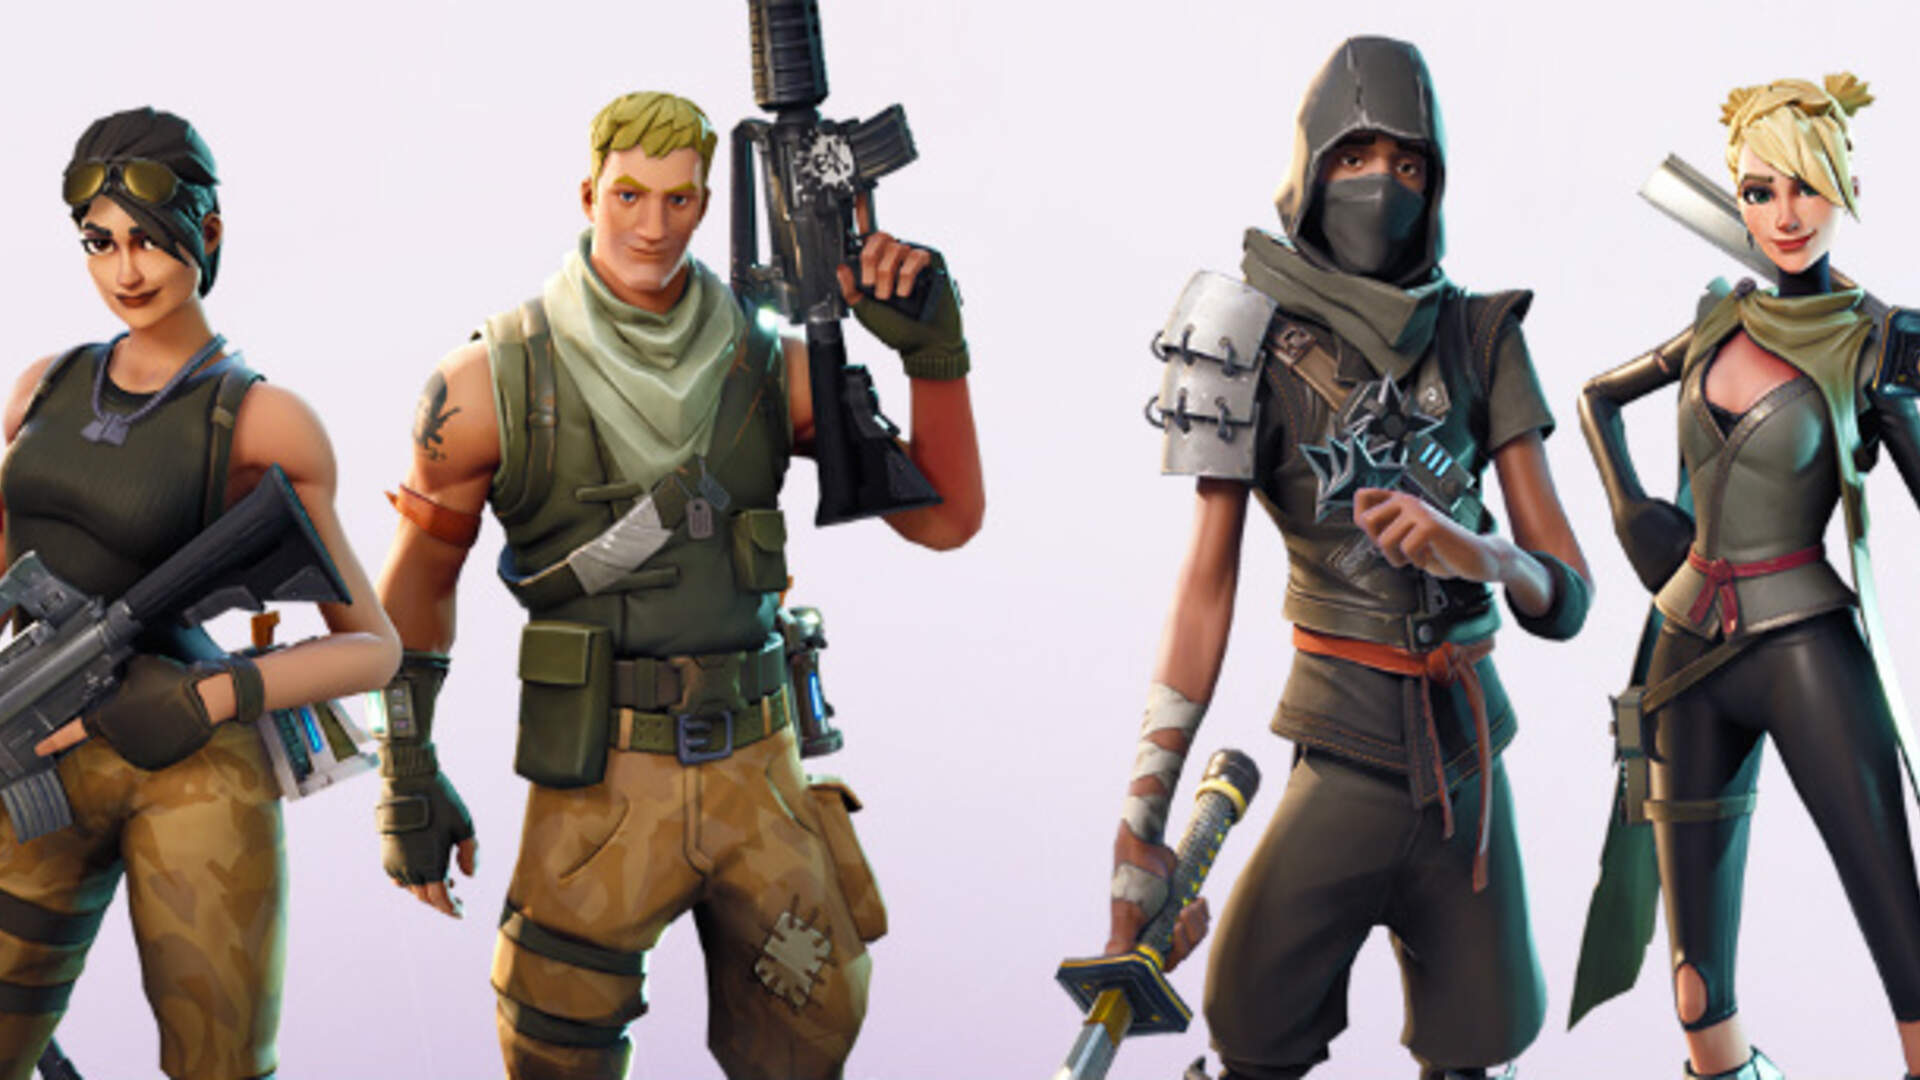 Fortnite Servers are Still Offline, and Epic Can't Say When They'll be Fixed [Update: They're back!]